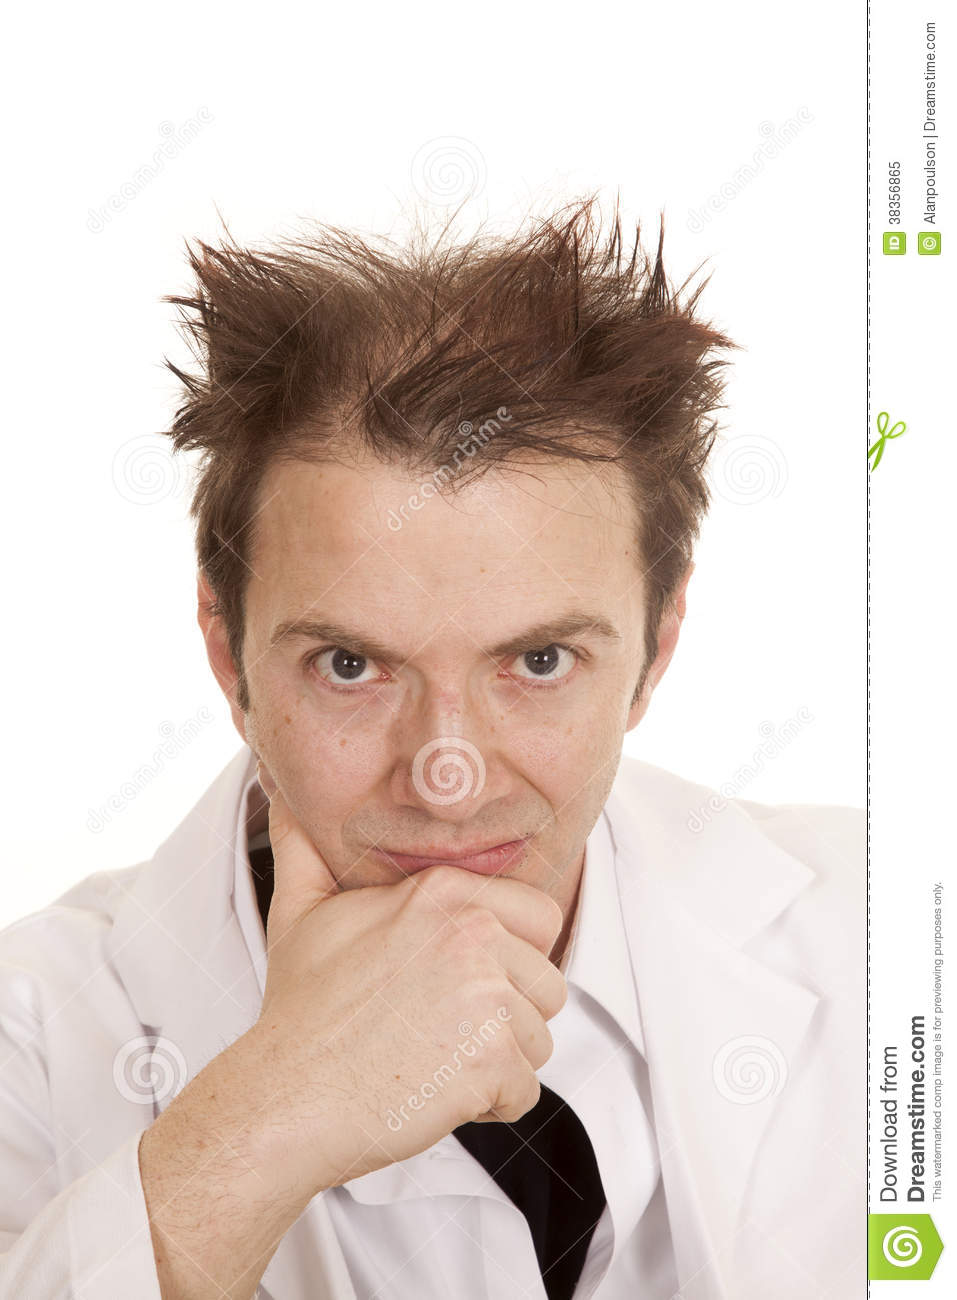 Messed Up Makeup: Doctor Messed Up Hair Hand On Chin Stock Image